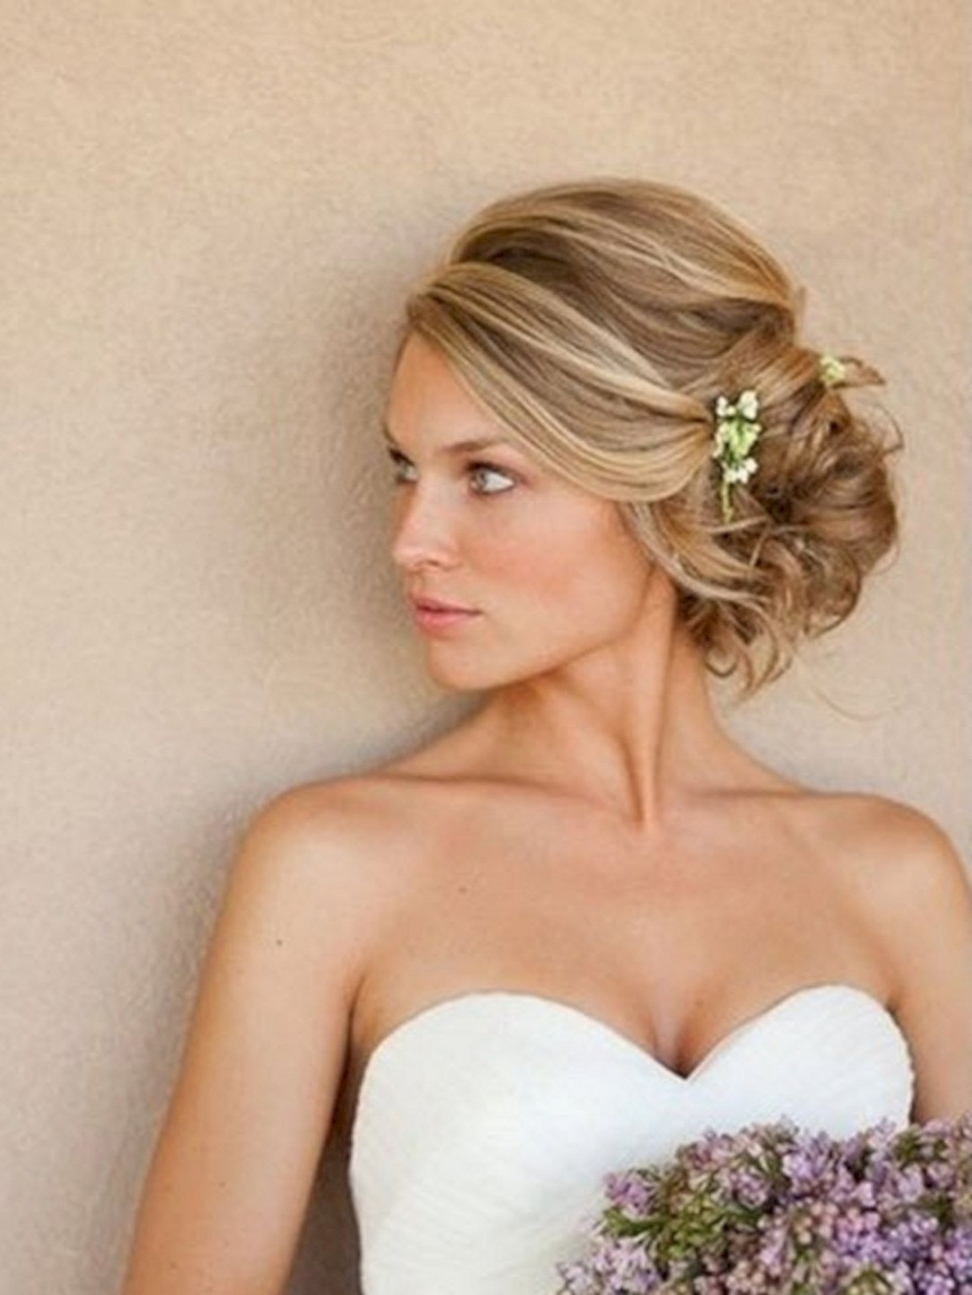 Wedding Hairstyle Short Hair – Oosile | Wedding Updos For Short Within Wedding Updo Hairstyles For Short Hair (View 11 of 15)